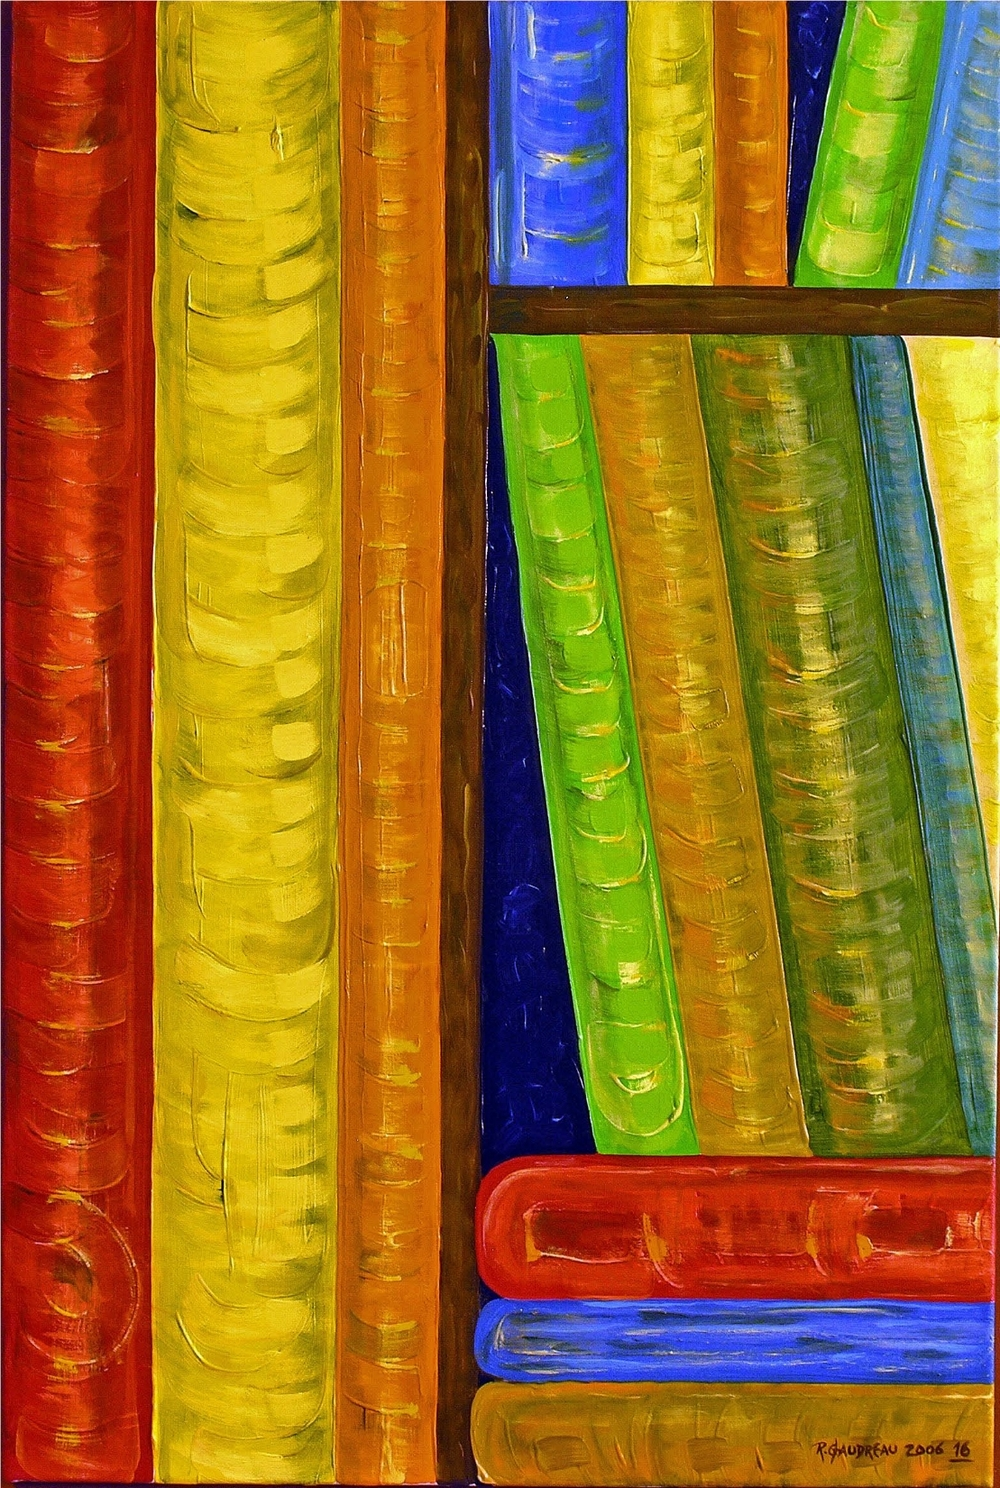 16  Books 2006 oil on canvas 36 x 24 inches